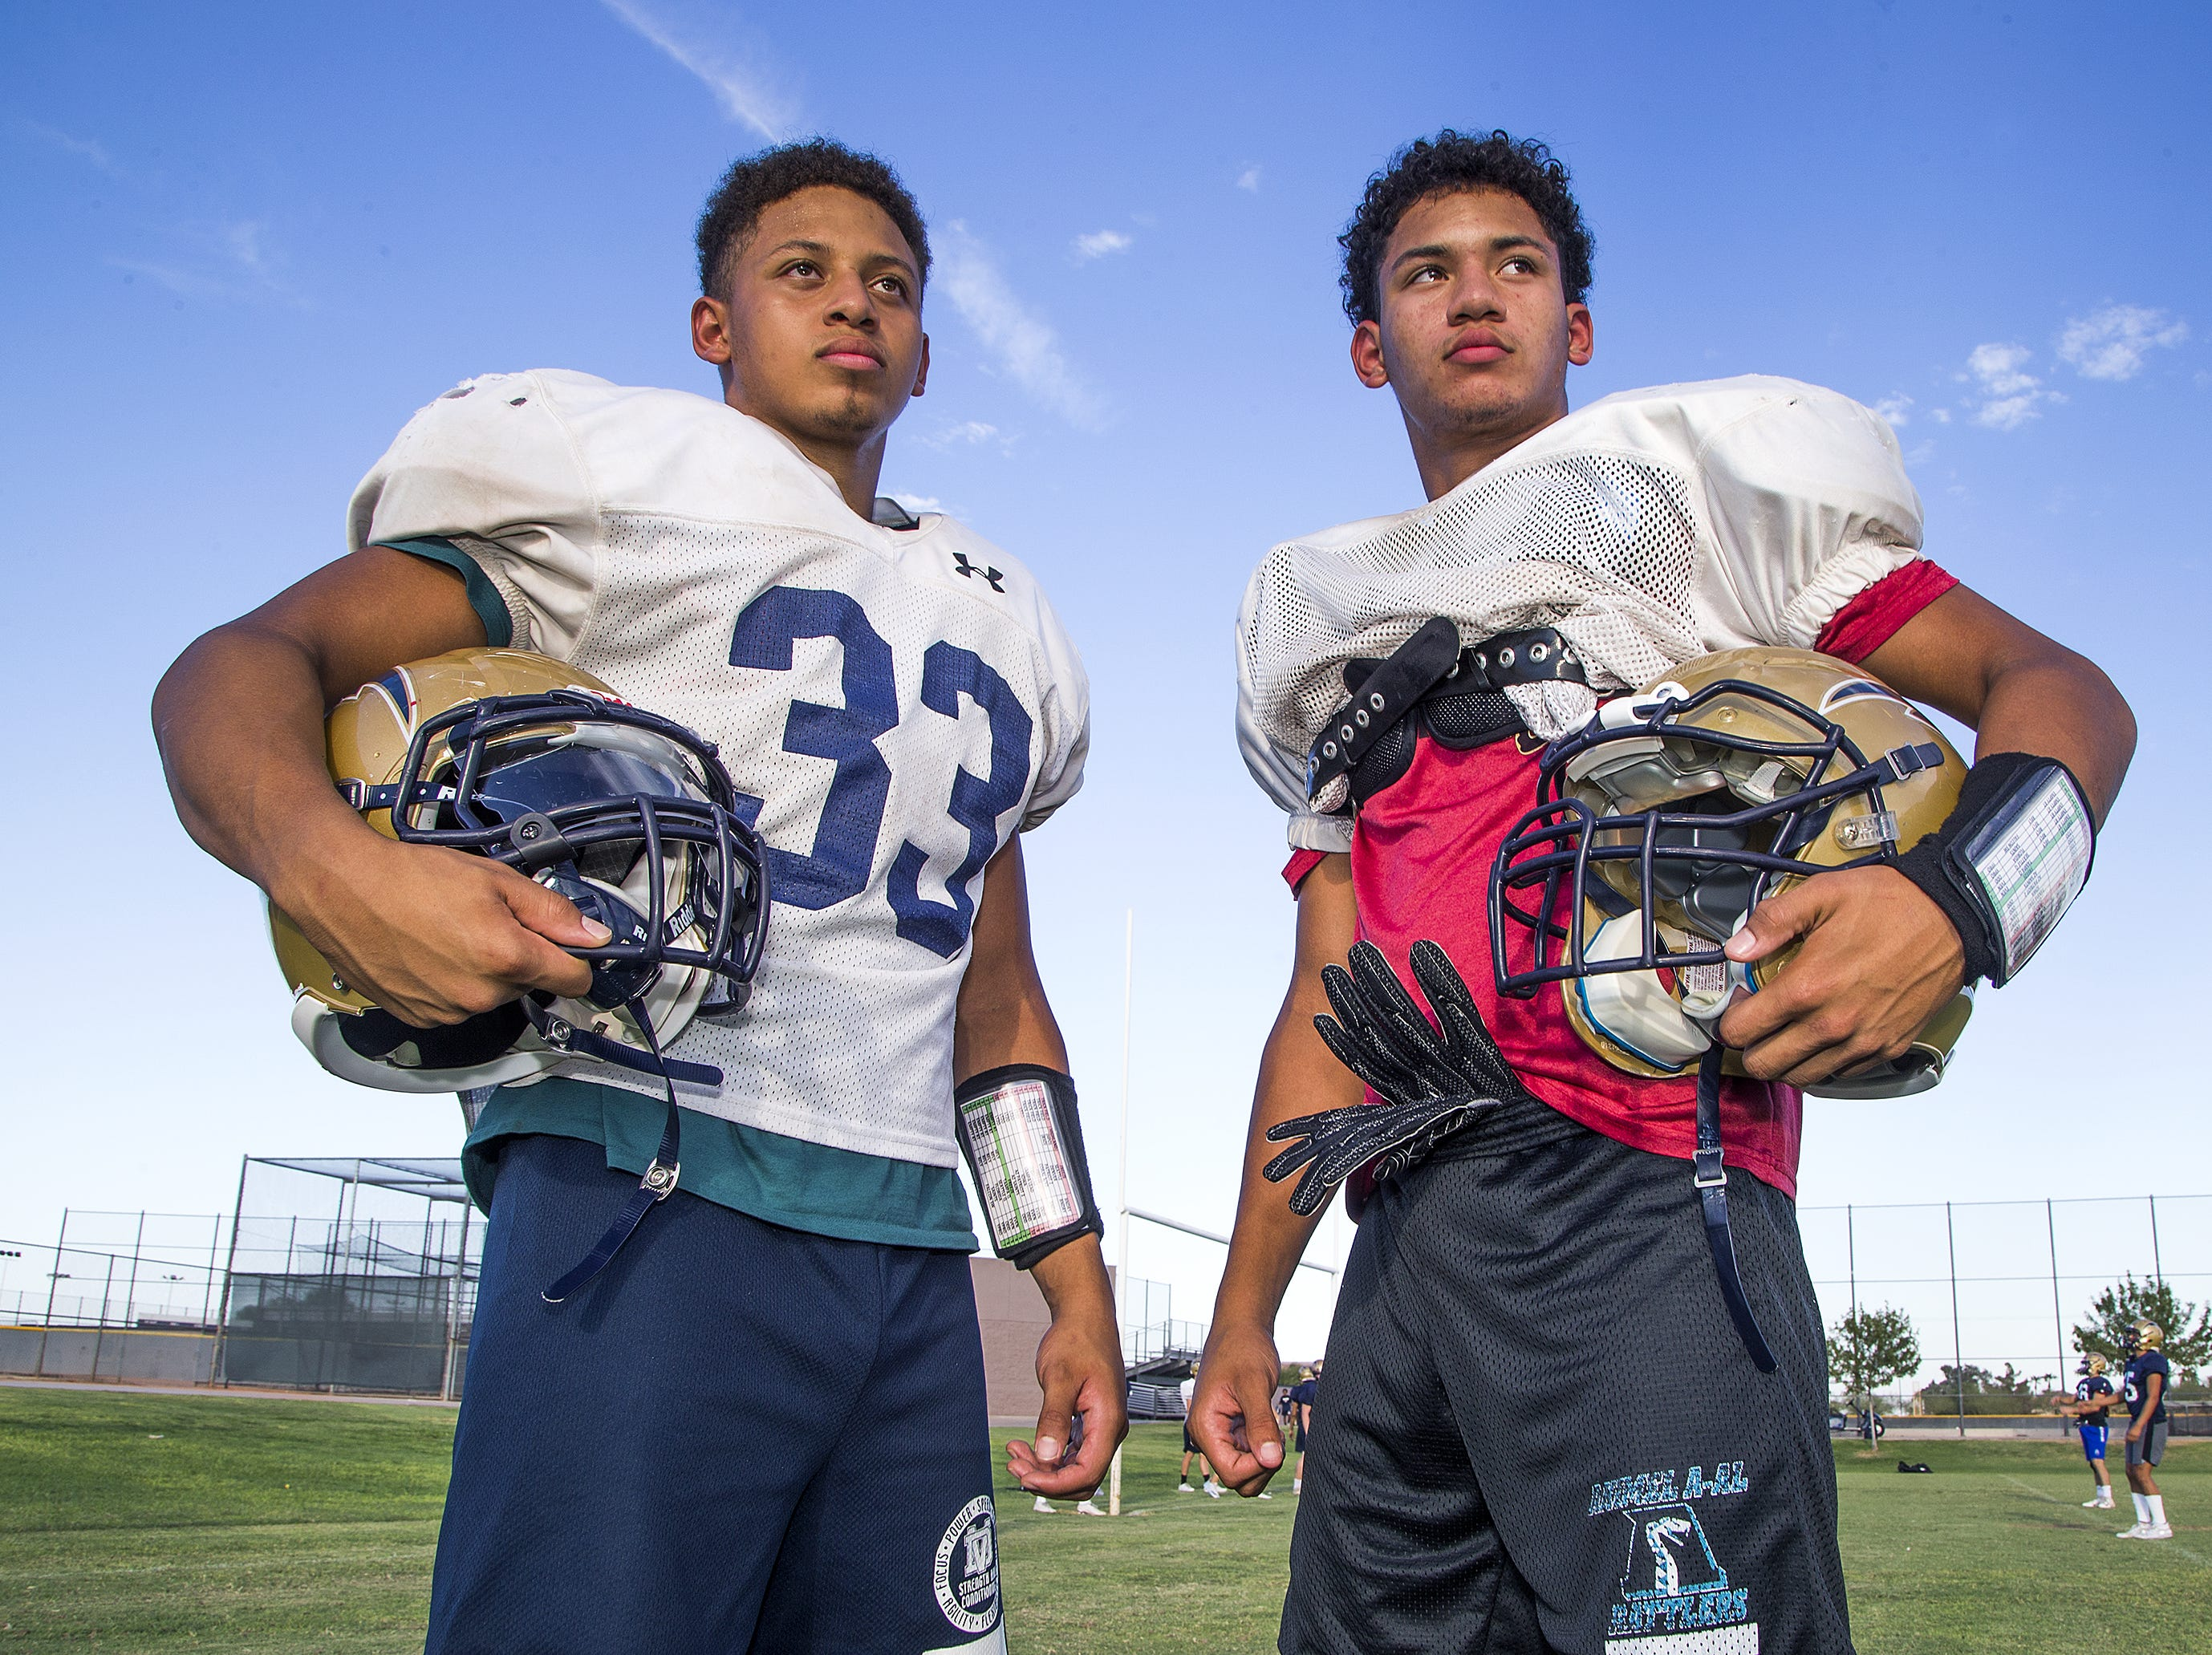 Brothers Tyson, left, and Devon Grubbs are a running back duo for Desert Vista High School that has led the team to a 4-0 start.